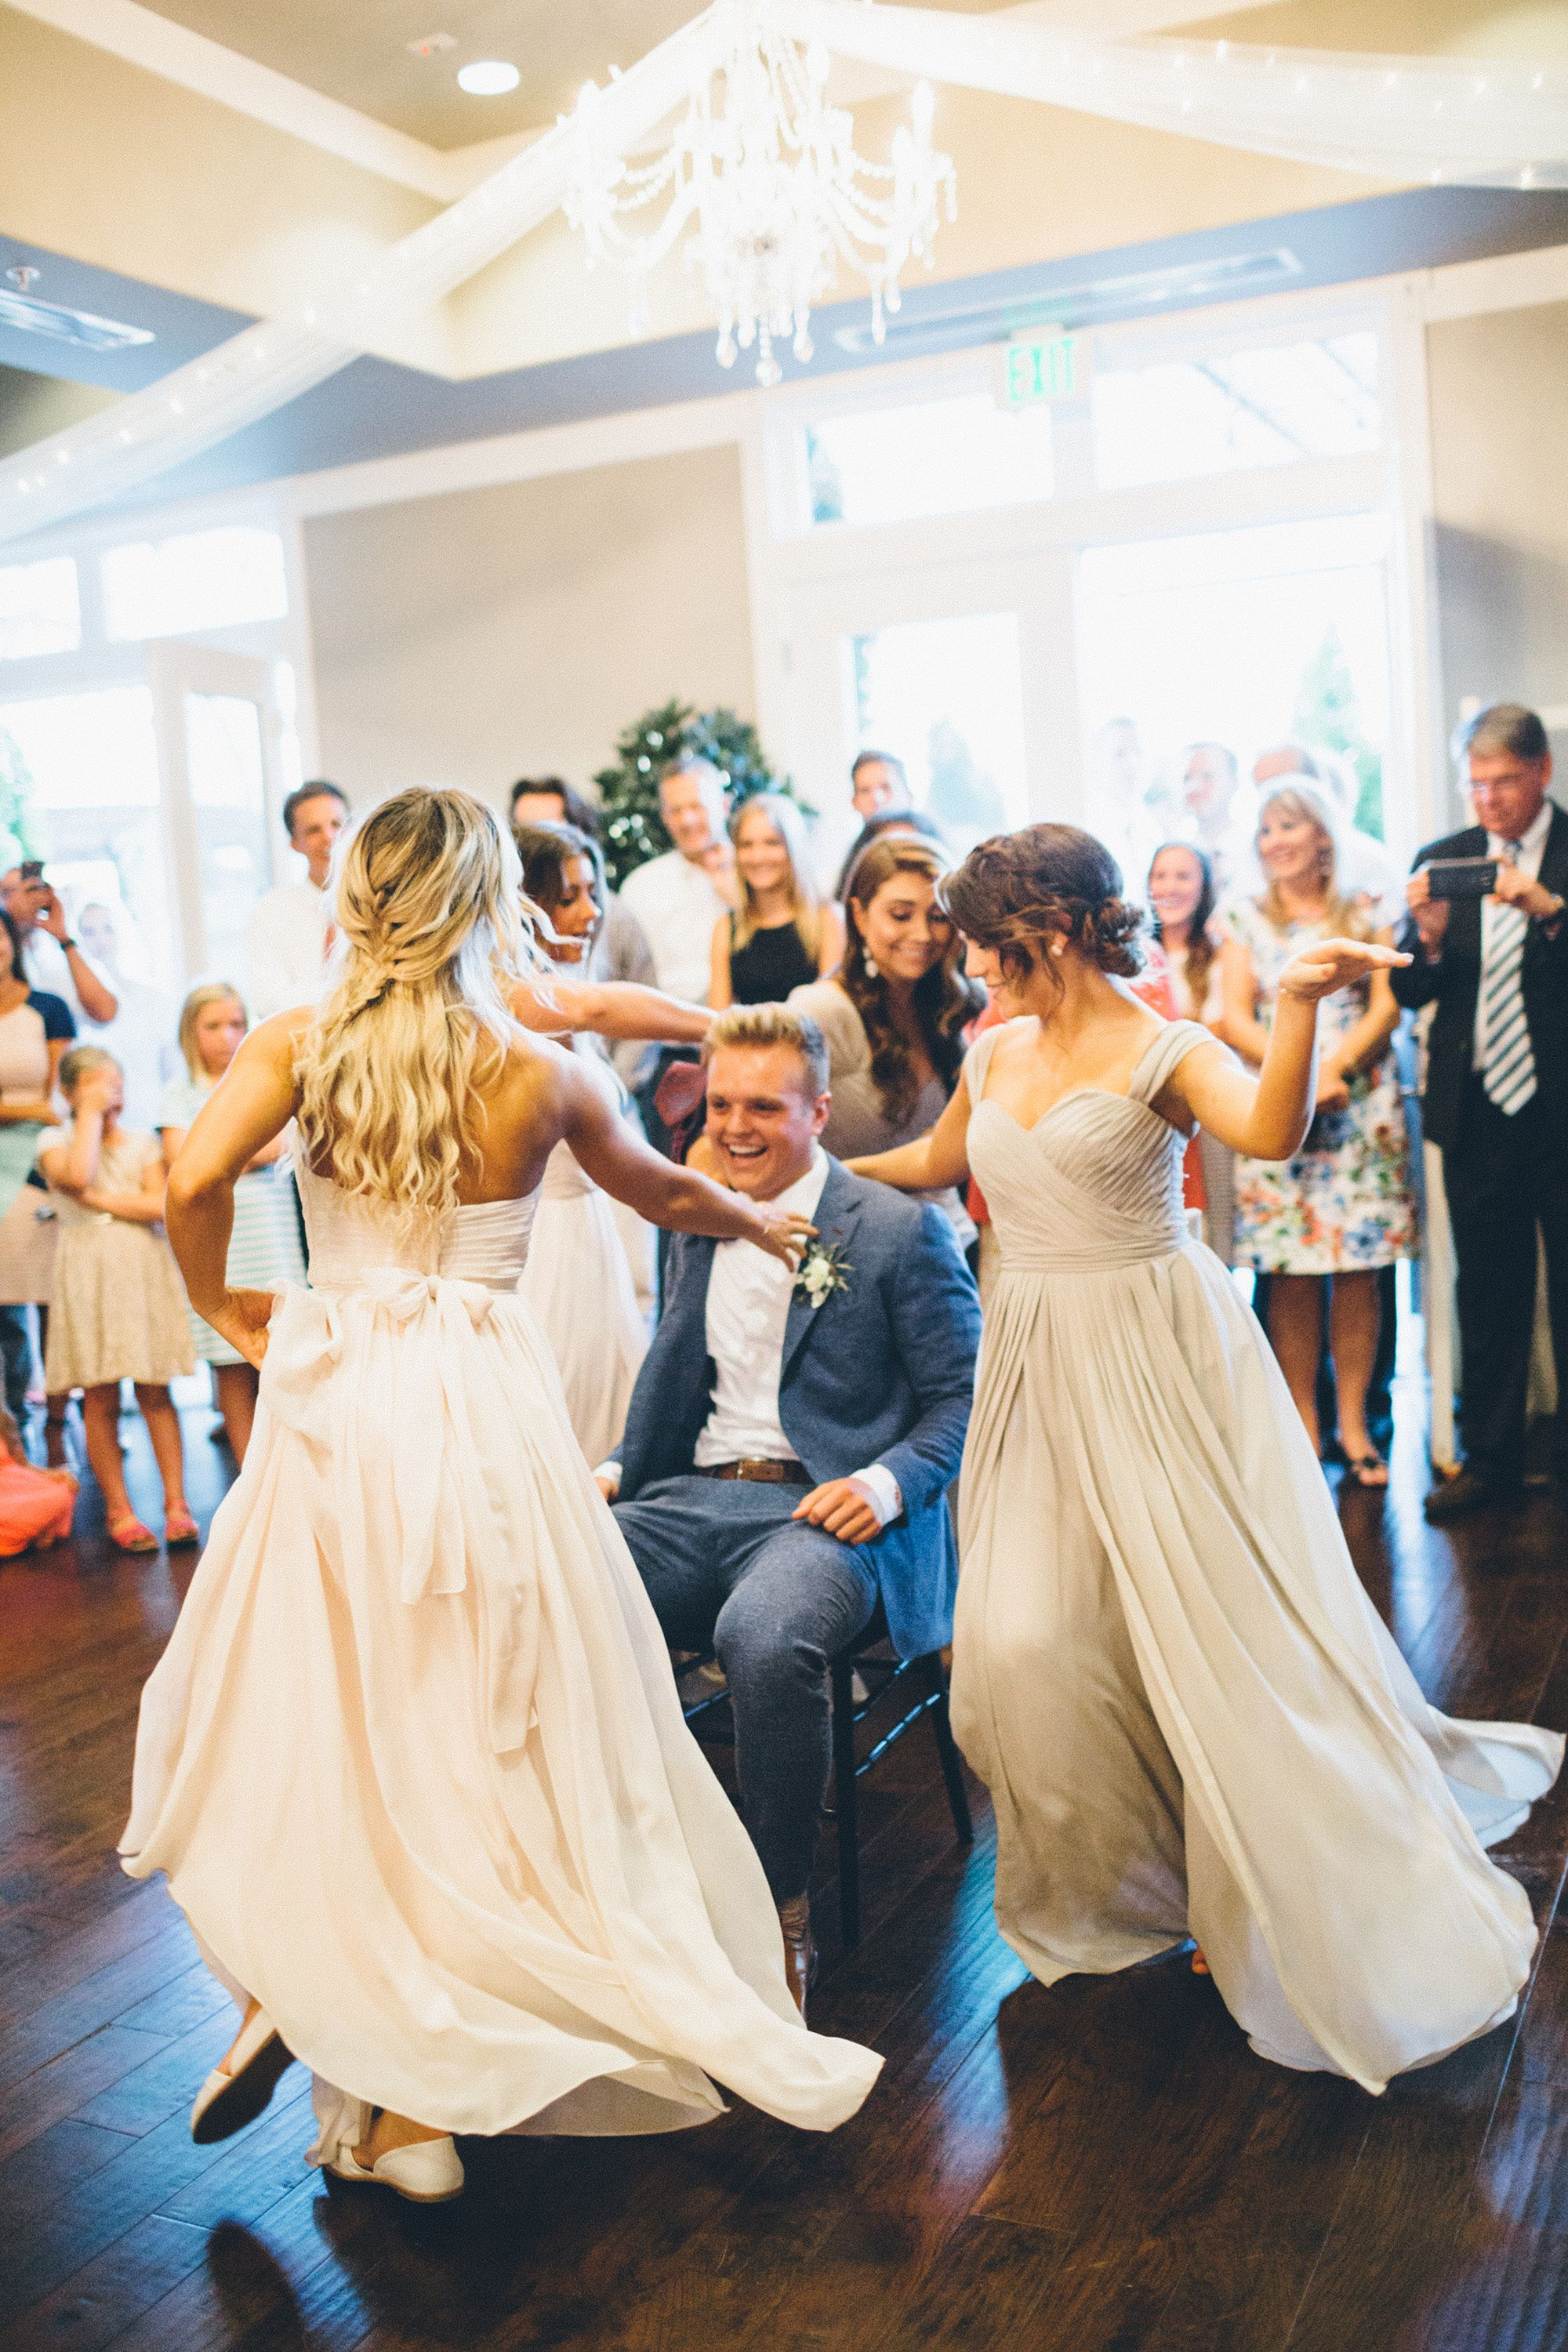 Lindsay Arnold Wedding.Lindsay Arnold Wedding Dancing With The Stars Groom S Dance For